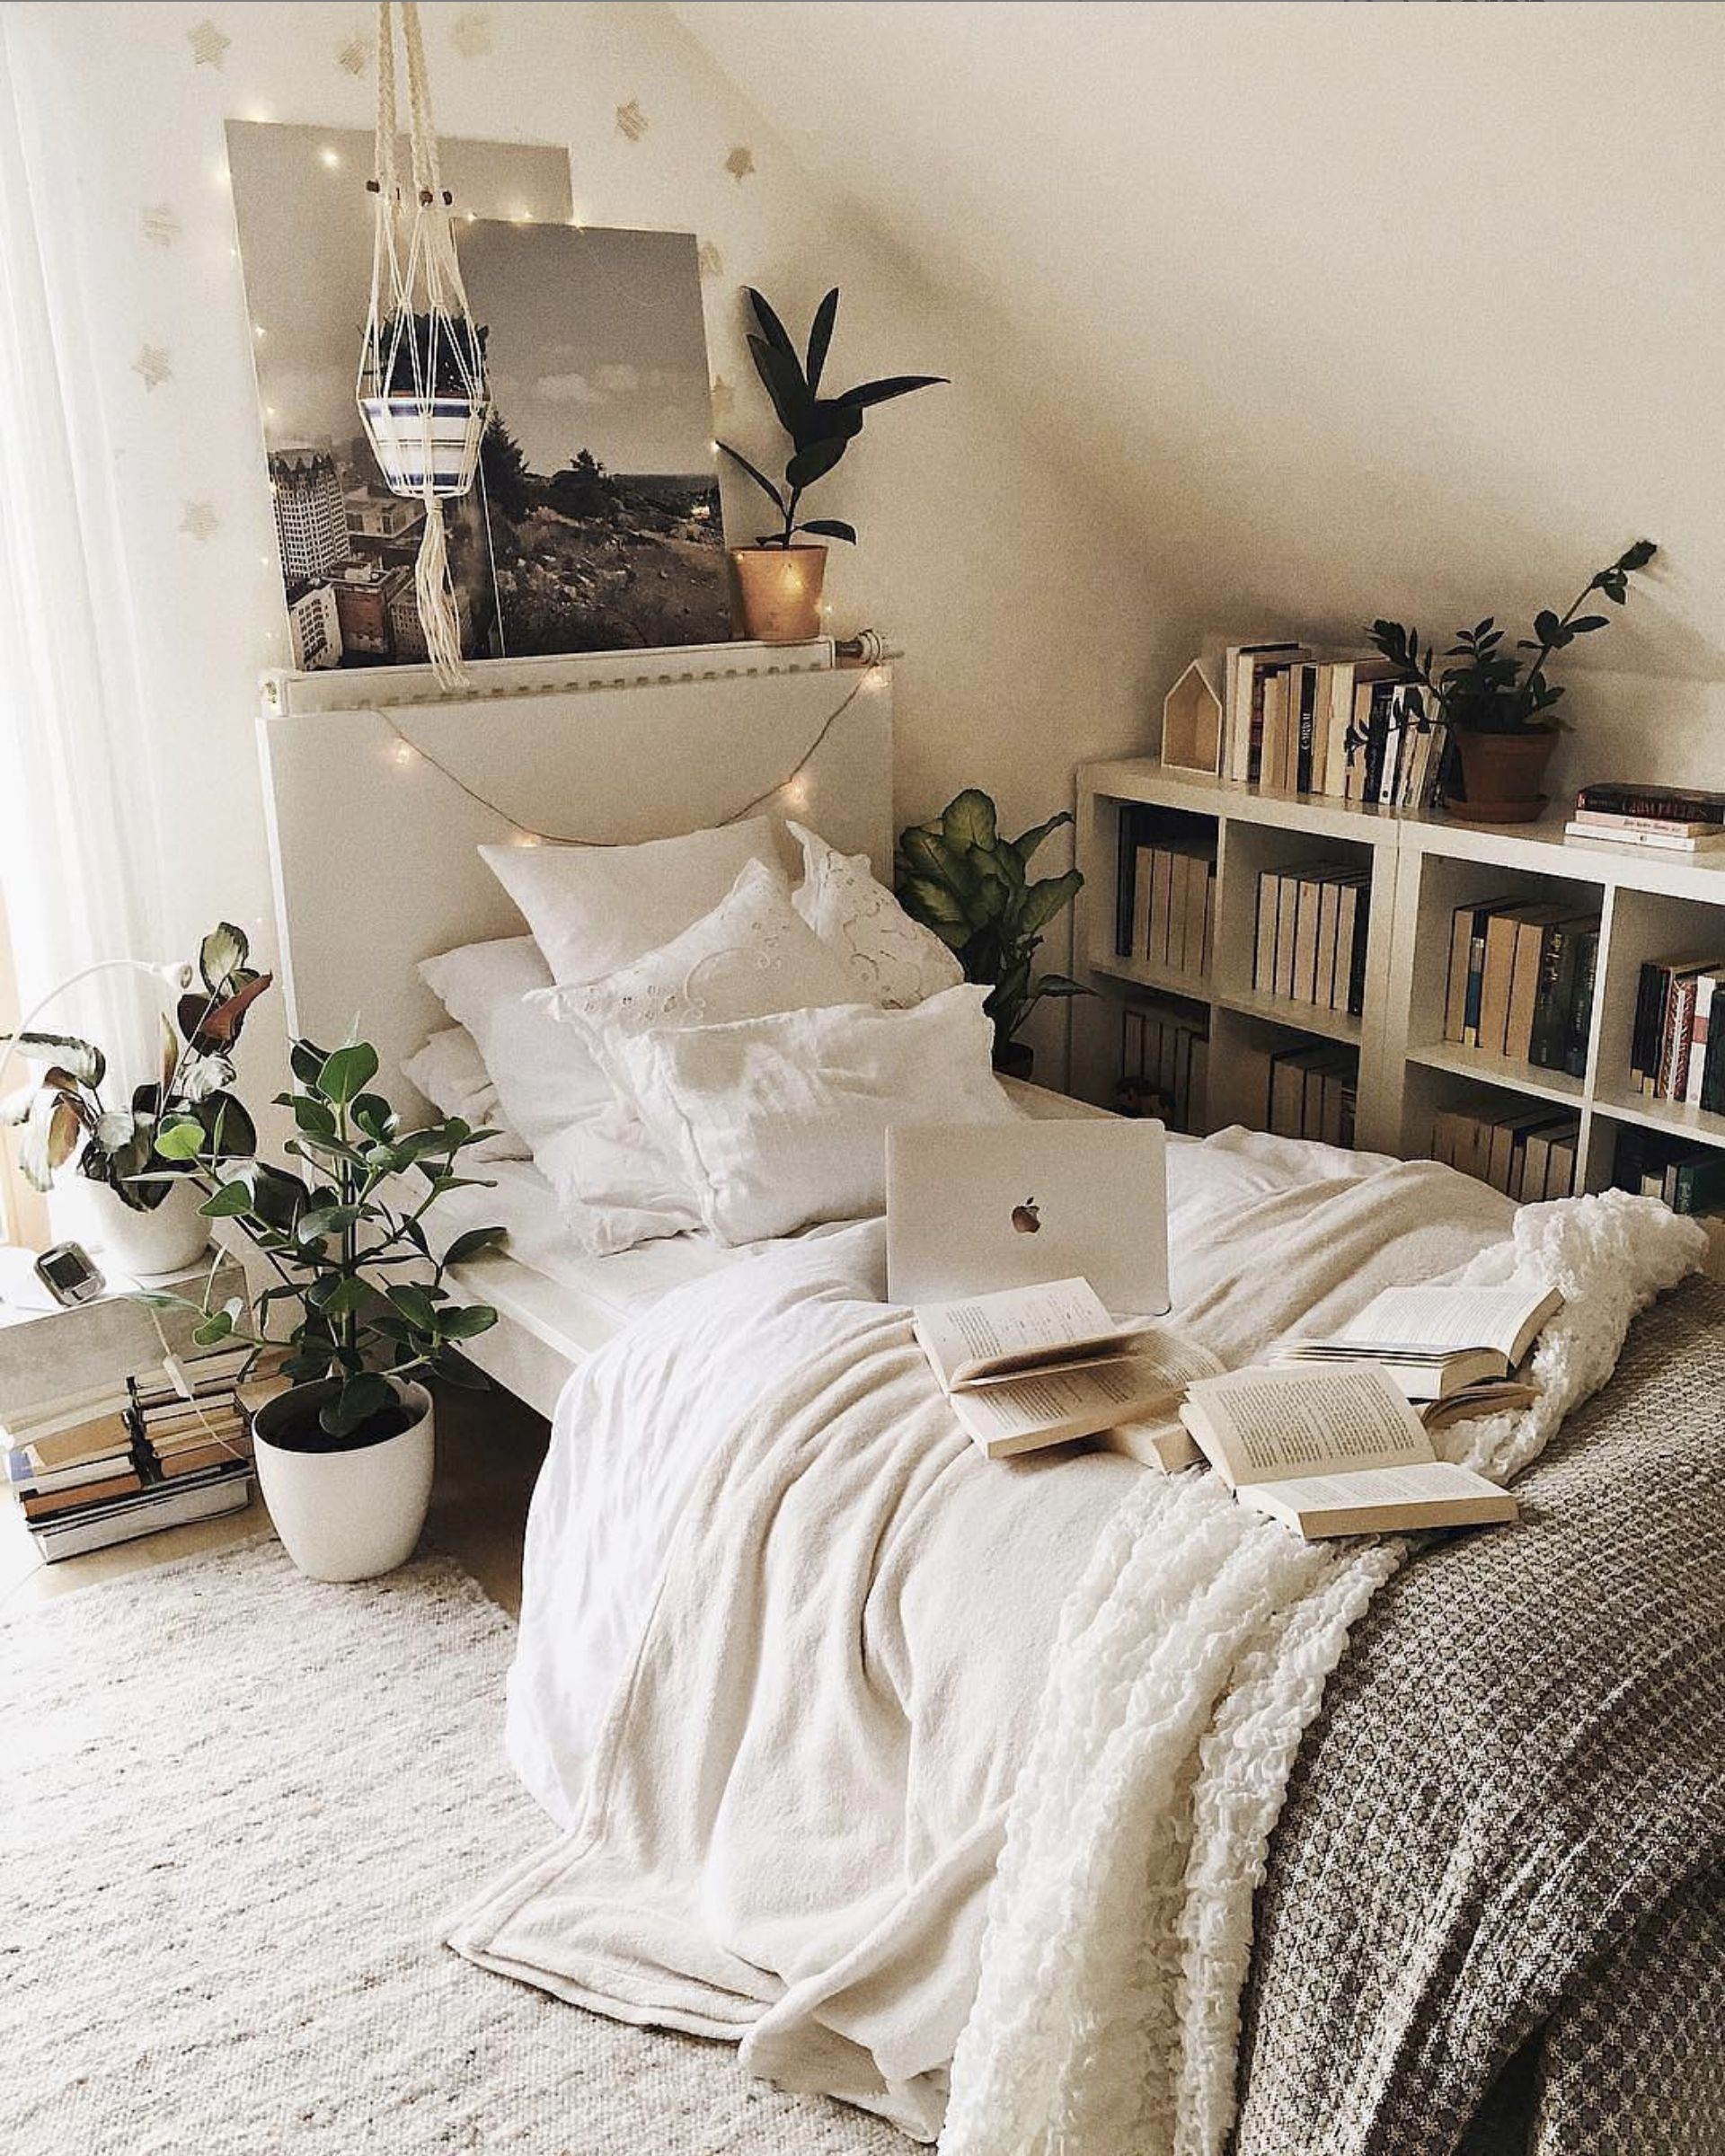 Simple But Cozy Bedroom With Tons Of Books And Plants By Booksandpeonies Click The Image To Try Our Free Hom Cozy Small Bedrooms Room Diy Small Room Bedroom